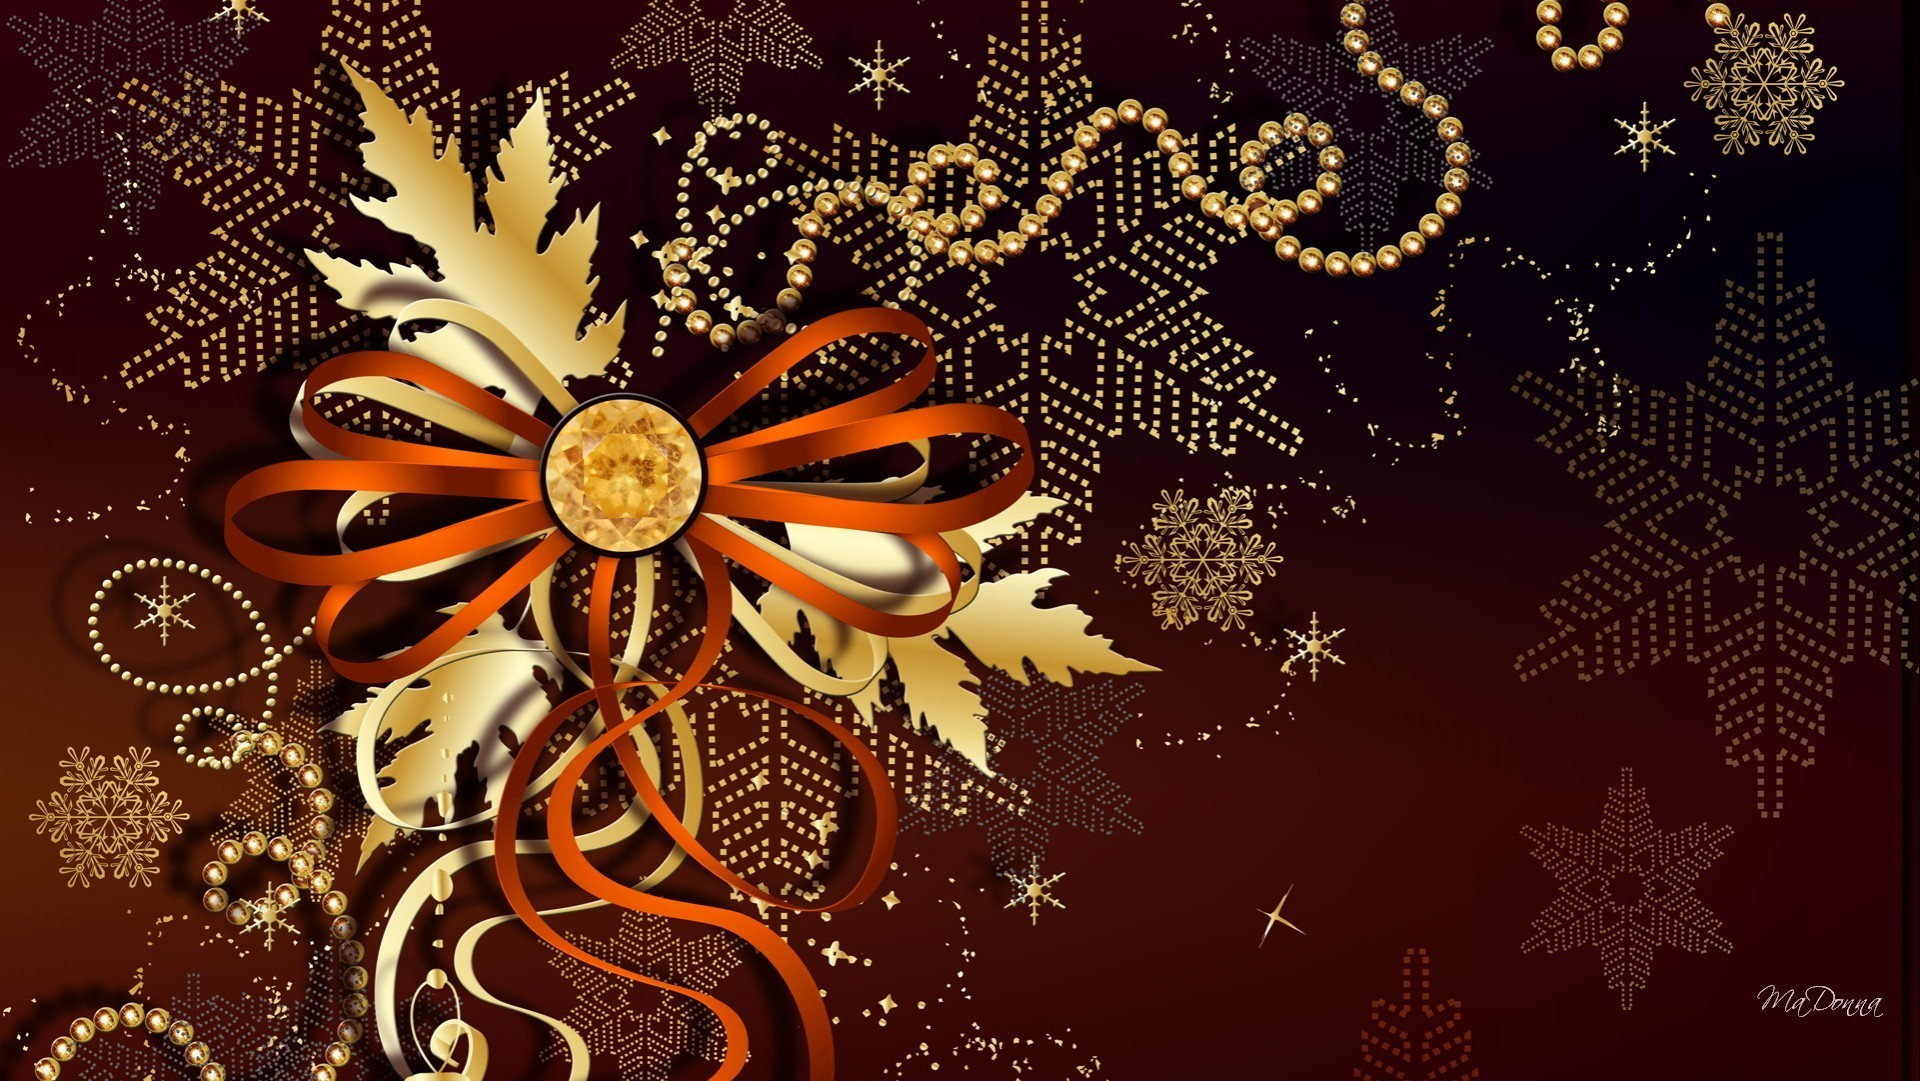 Res: 1920x1081, Holiday bronze wallpaper